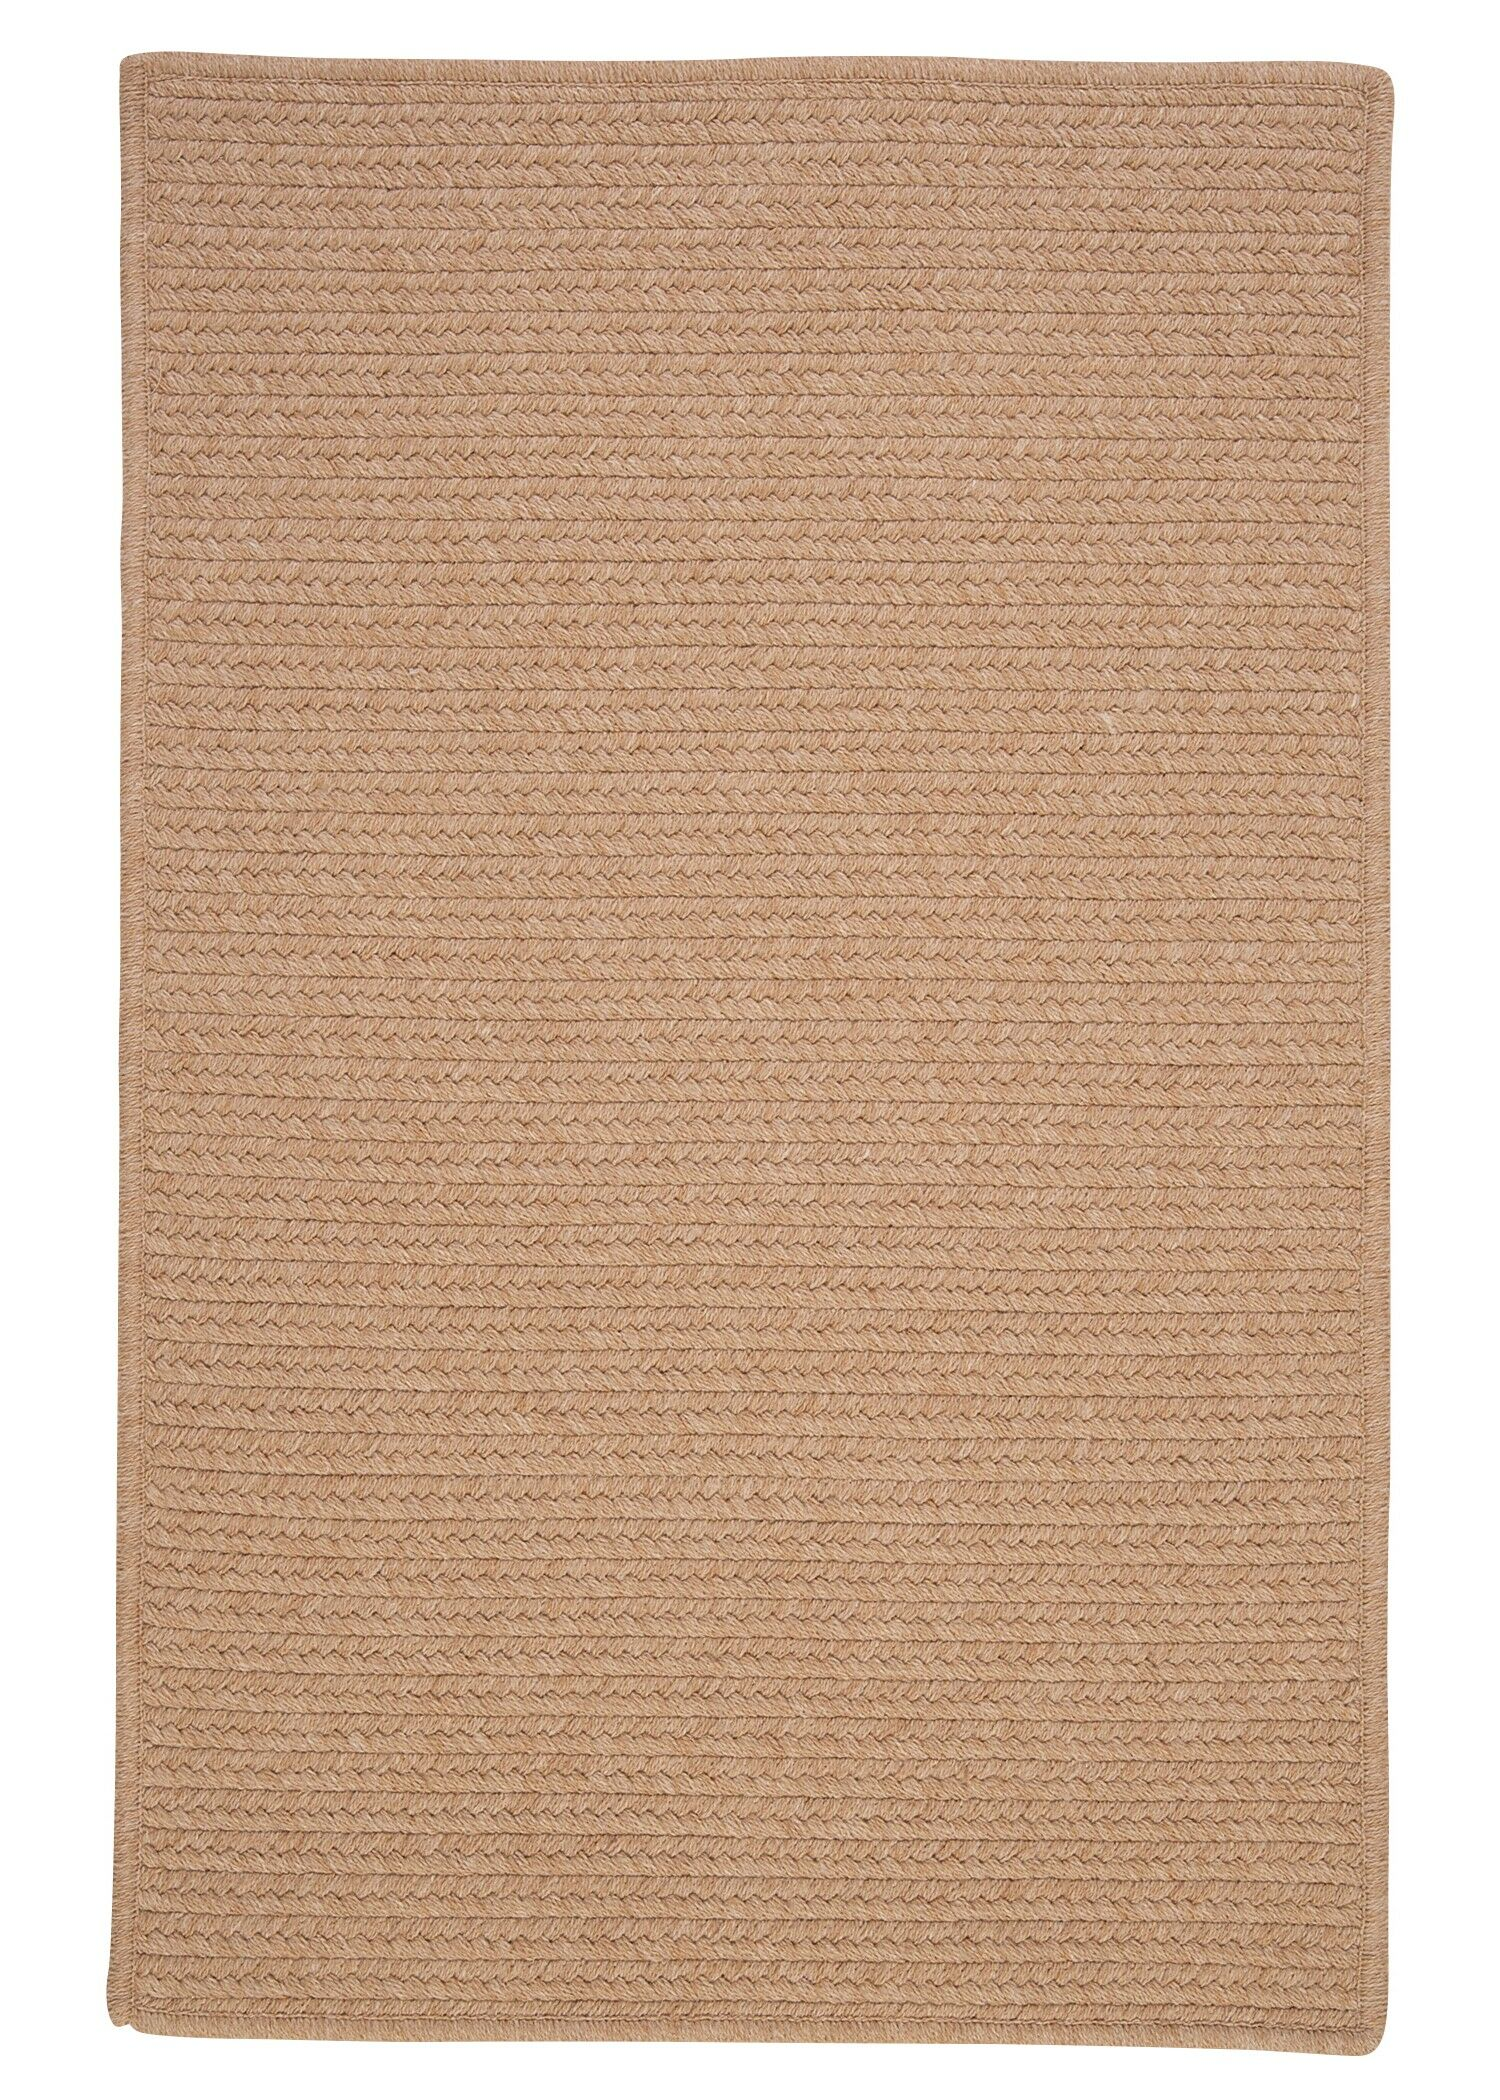 Westminster Oatmeal Area Rug Fringe: Not Included, Rug Size: Rectangle 5' x 8'